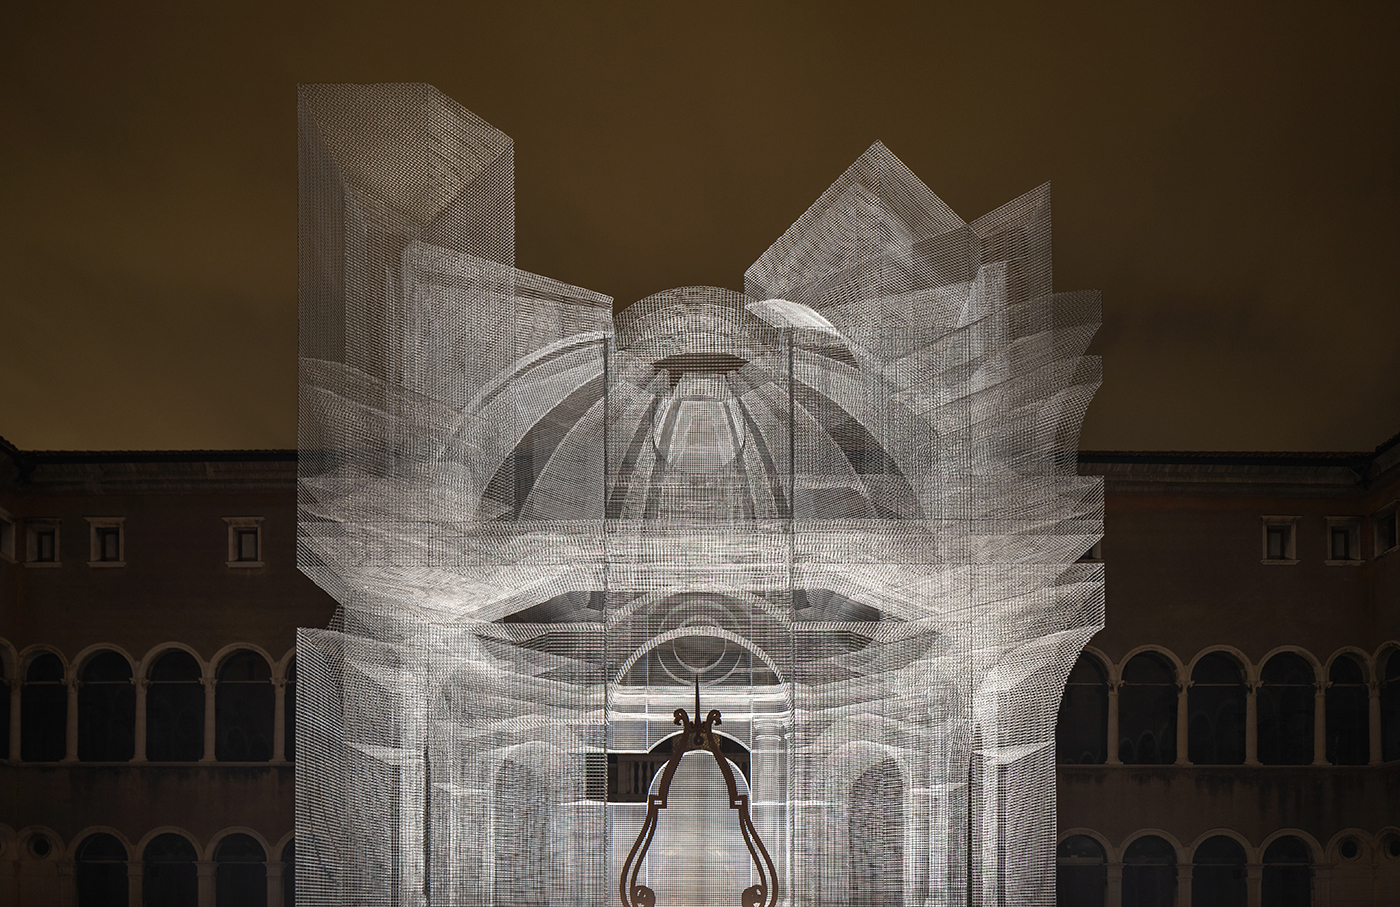 Sacral by Edoardo Tresoldi at MAR's Dante: The Eyes and the Mind in Ravenna